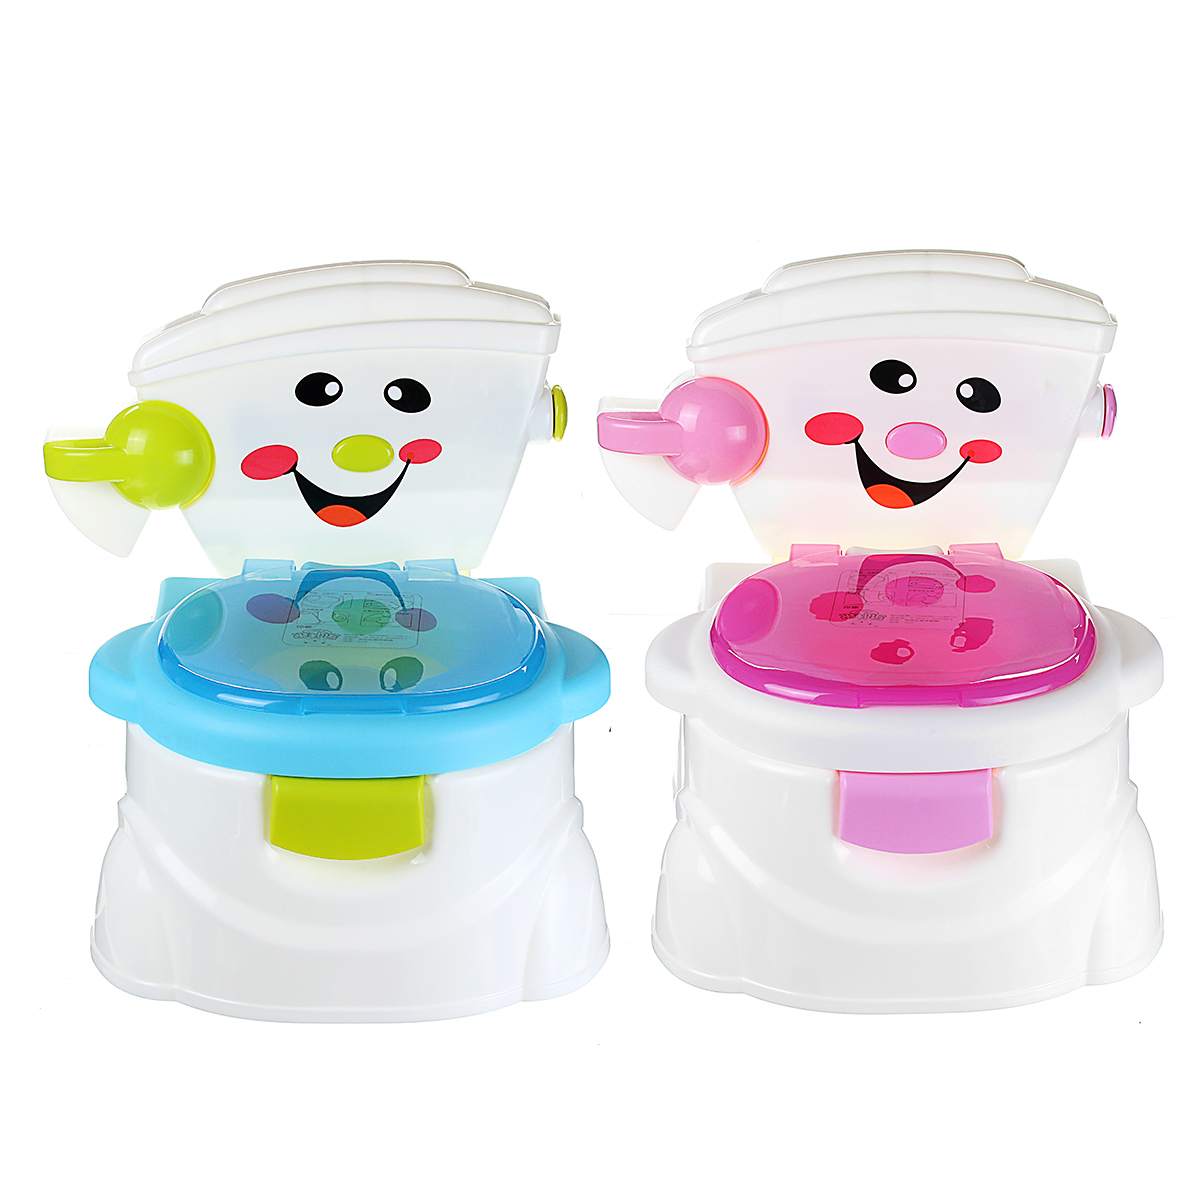 2 In1 Portable Music Kids Baby Toilet Trainer Child Tod